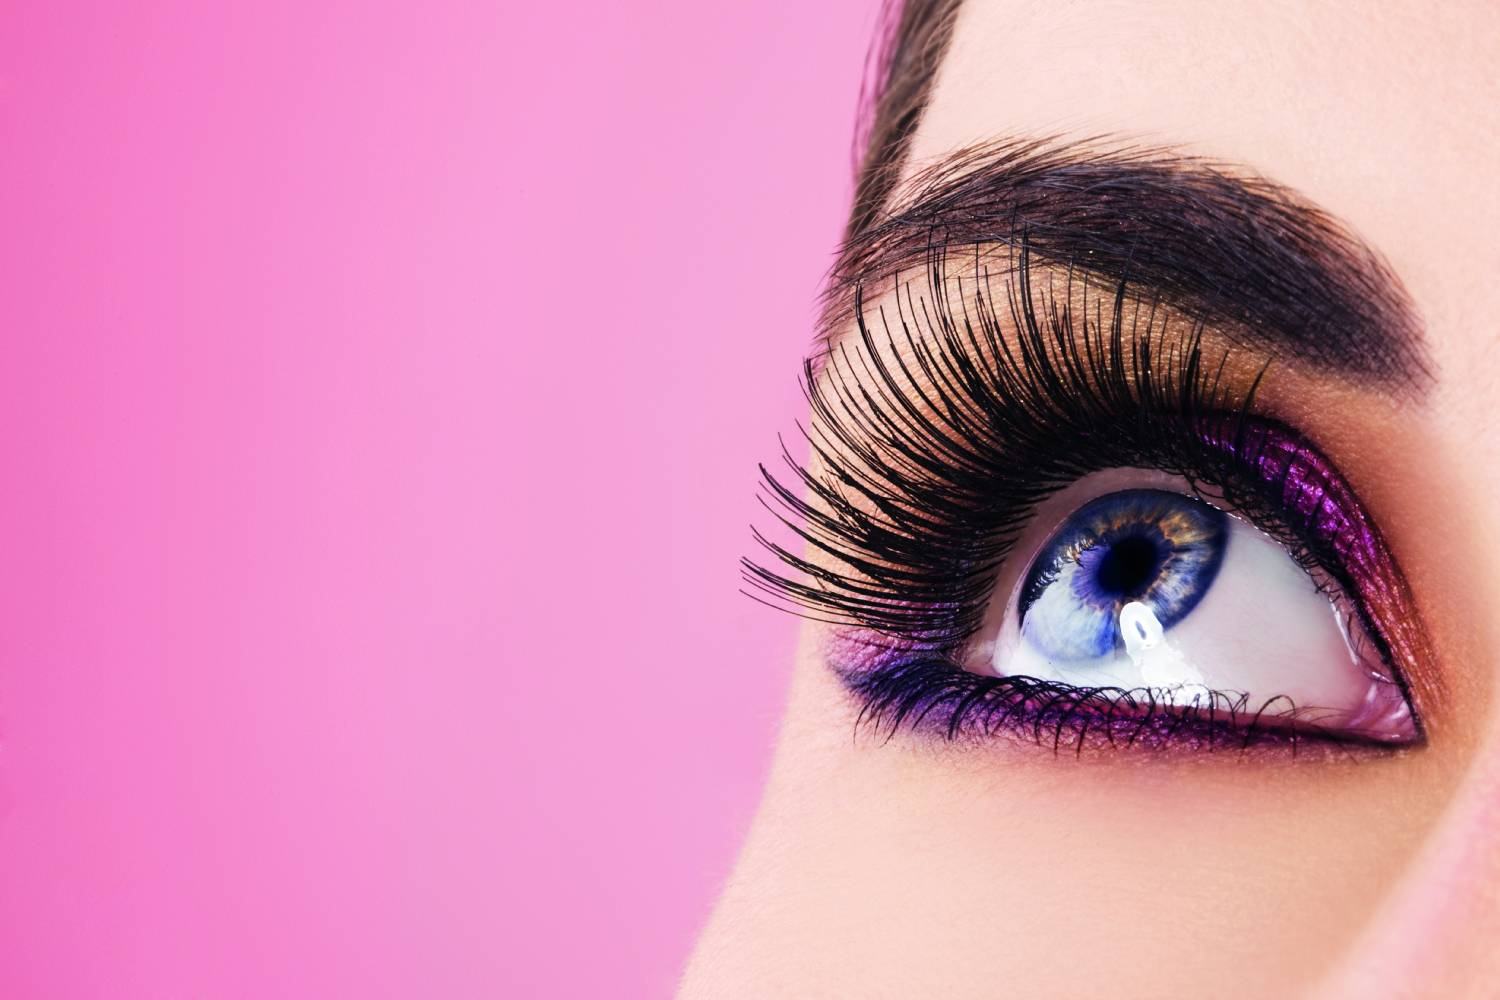 Wimpernextension und Wimpernlifting - Kosmetikbehandlung YLO 21 beautyhouse